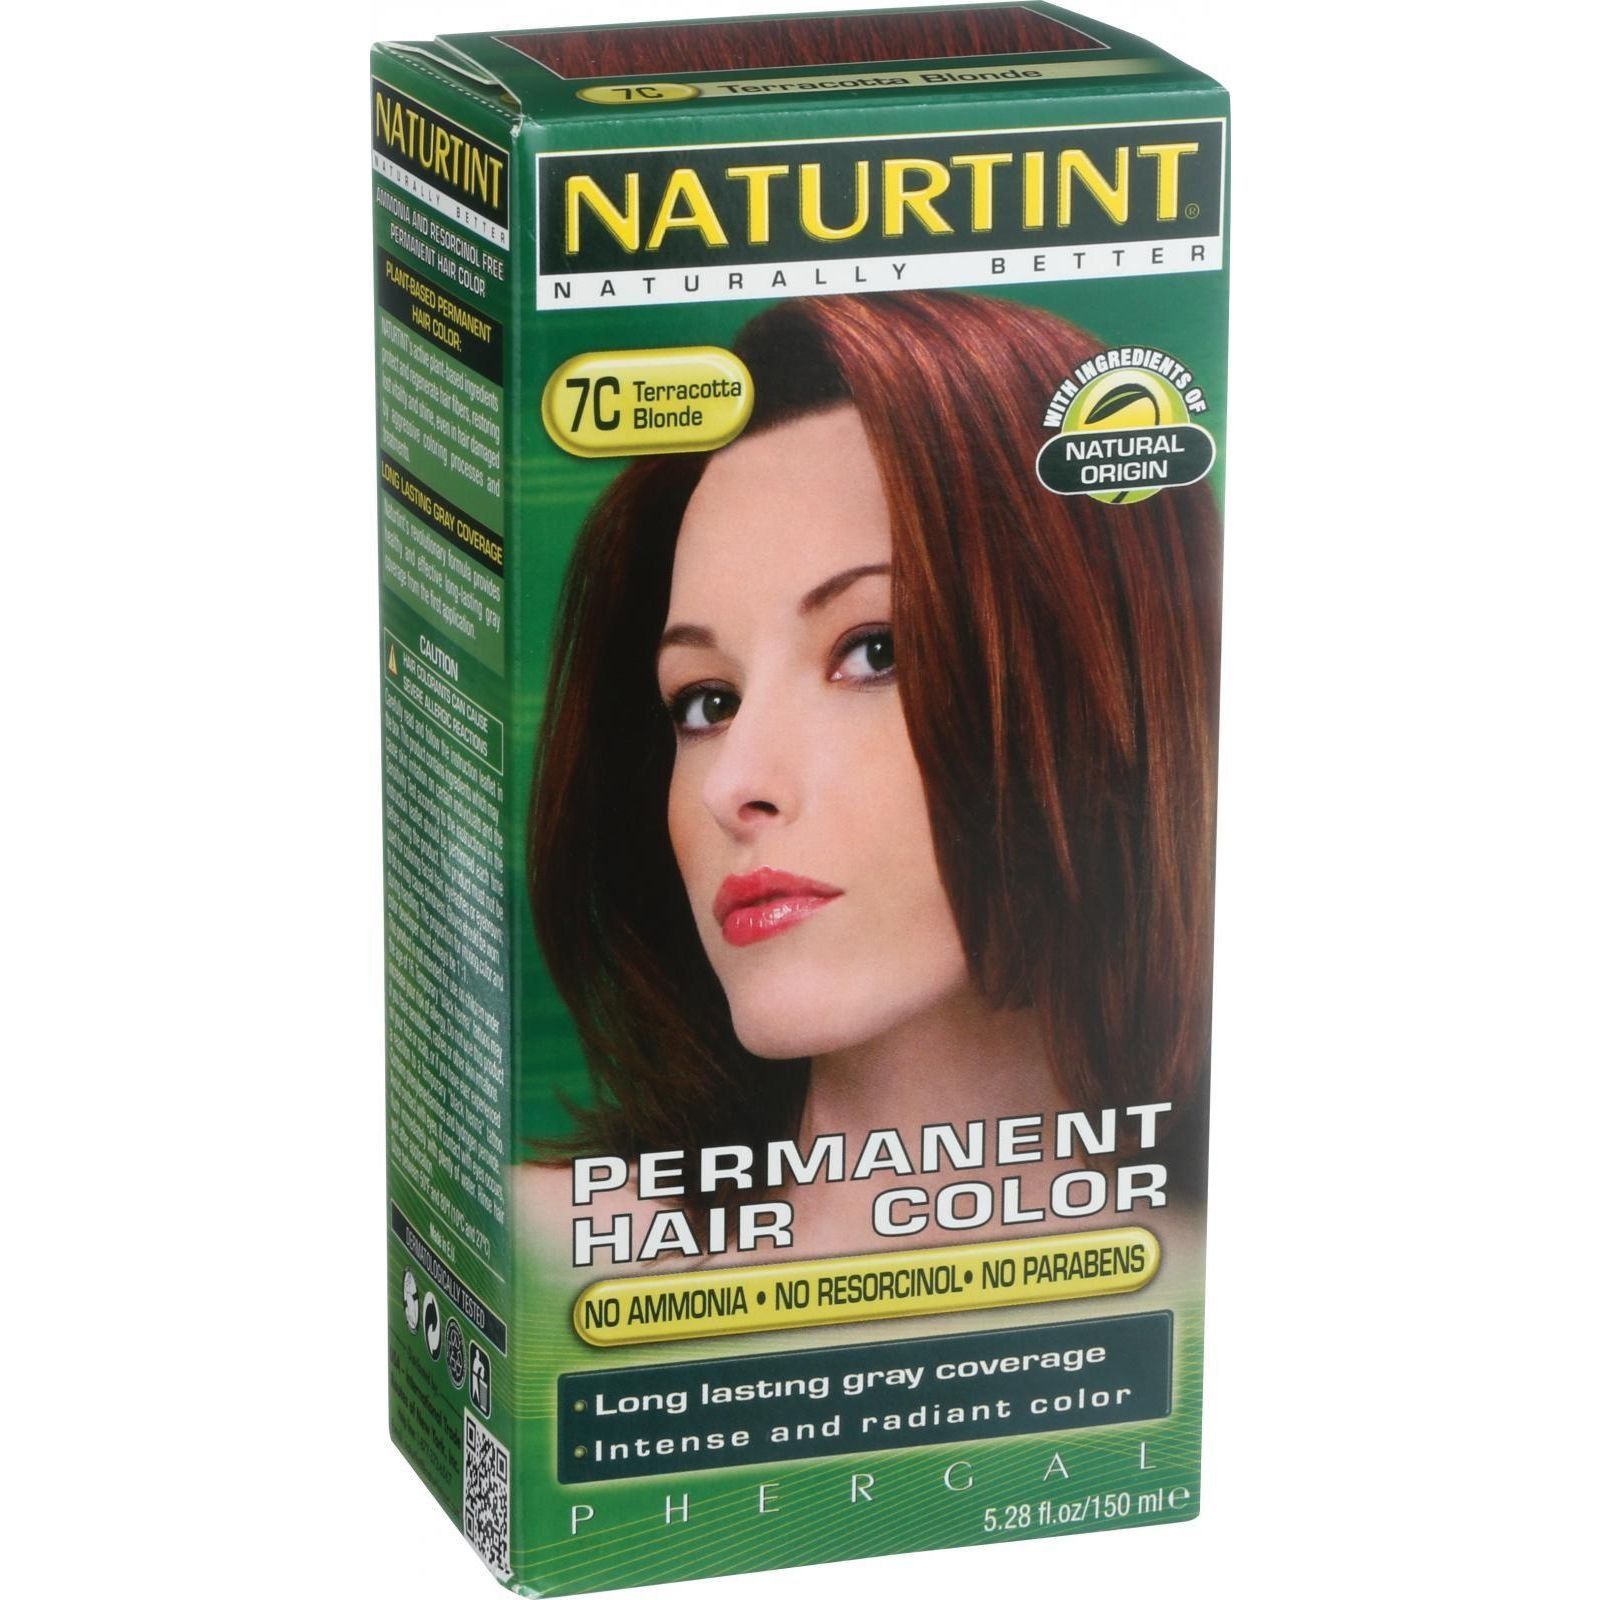 Naturtint Hair Color - Permanent - 7C - Terracotta Blonde - 5.28 oz (Pack of 3) by Naturtint